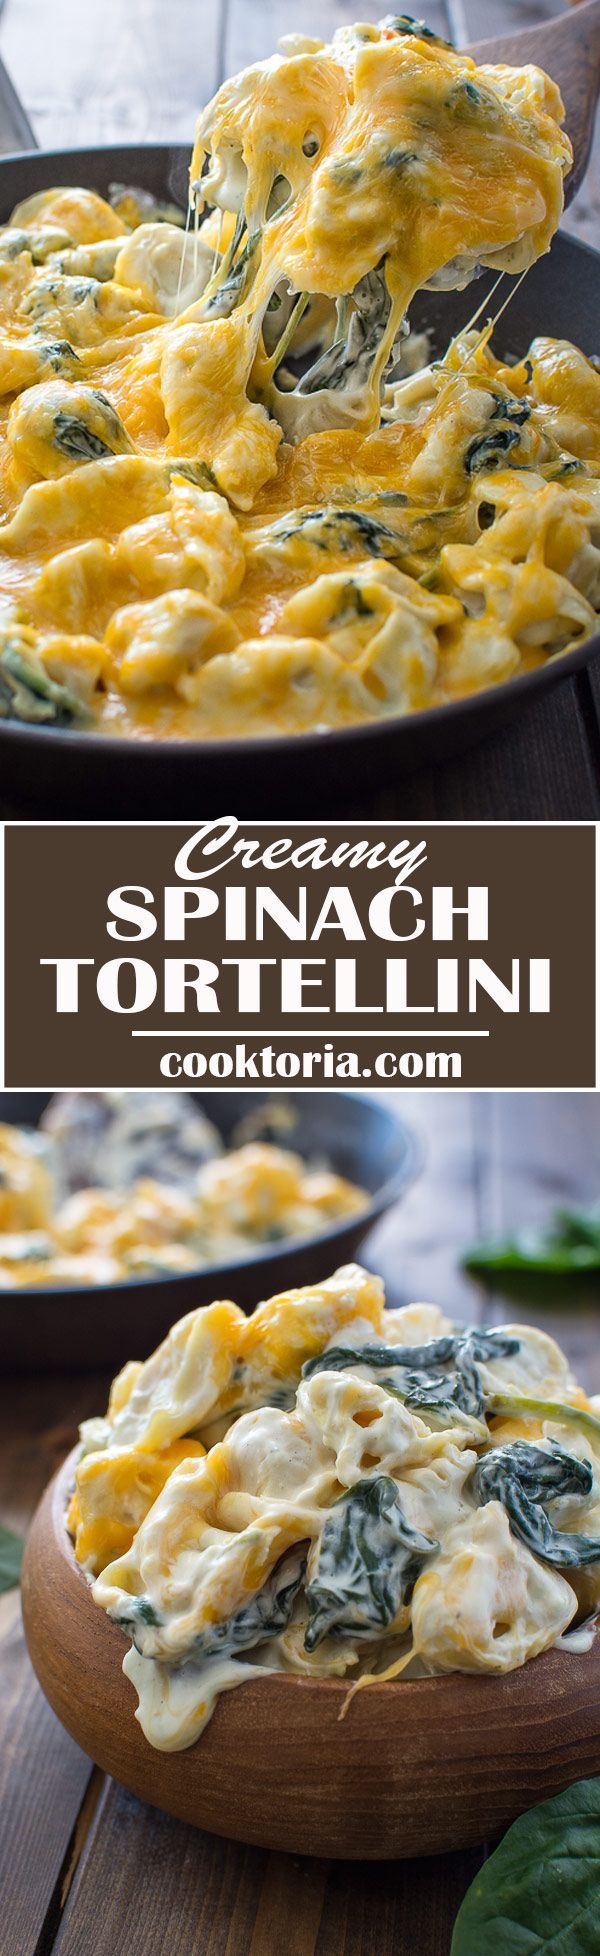 This 5-ingredient Creamy Spinach Tortellini makes a quick and tasty dinner that all the family will love! ❤️ http://COOKTORIA.COM